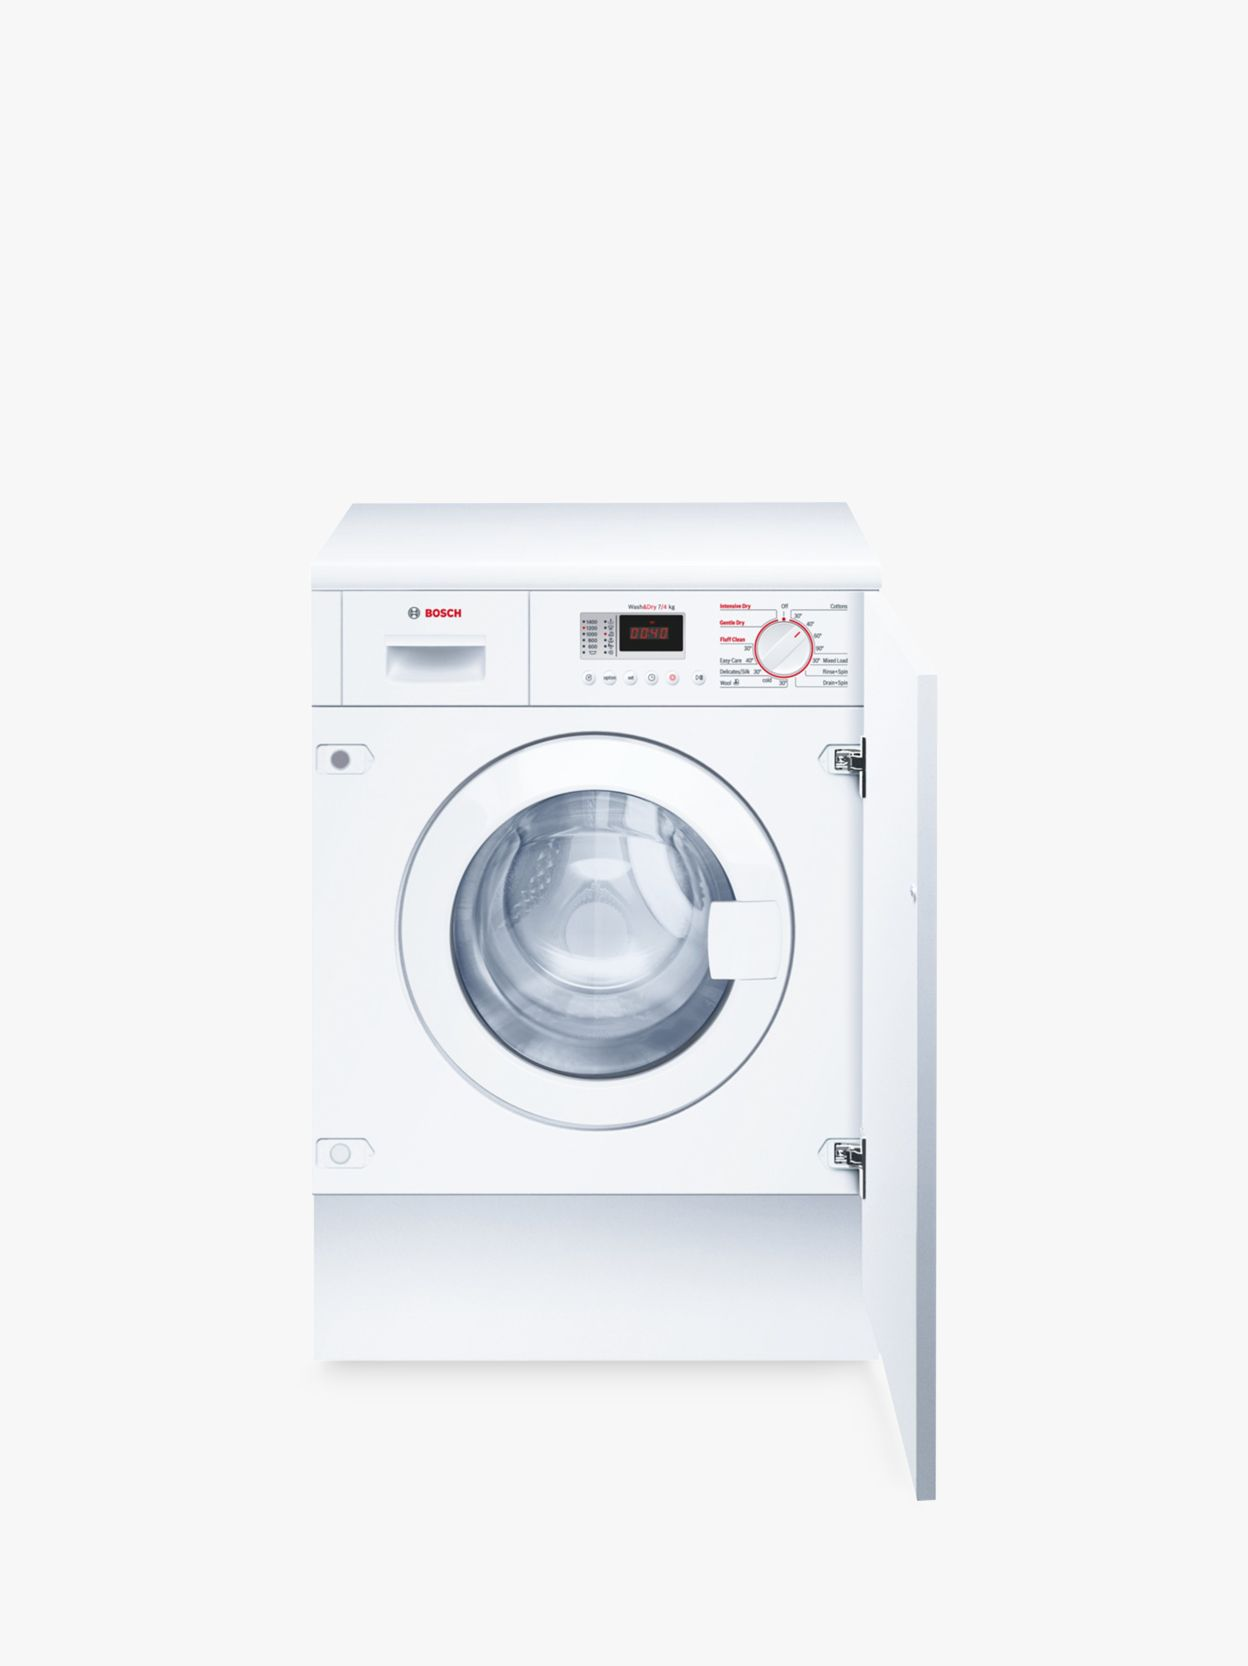 Bosch Bosch WKD28351GB Integrated Washer Dryer, 7kg Wash/4kg Dry Load, B Energy Rating, 1400rpm Spin, White